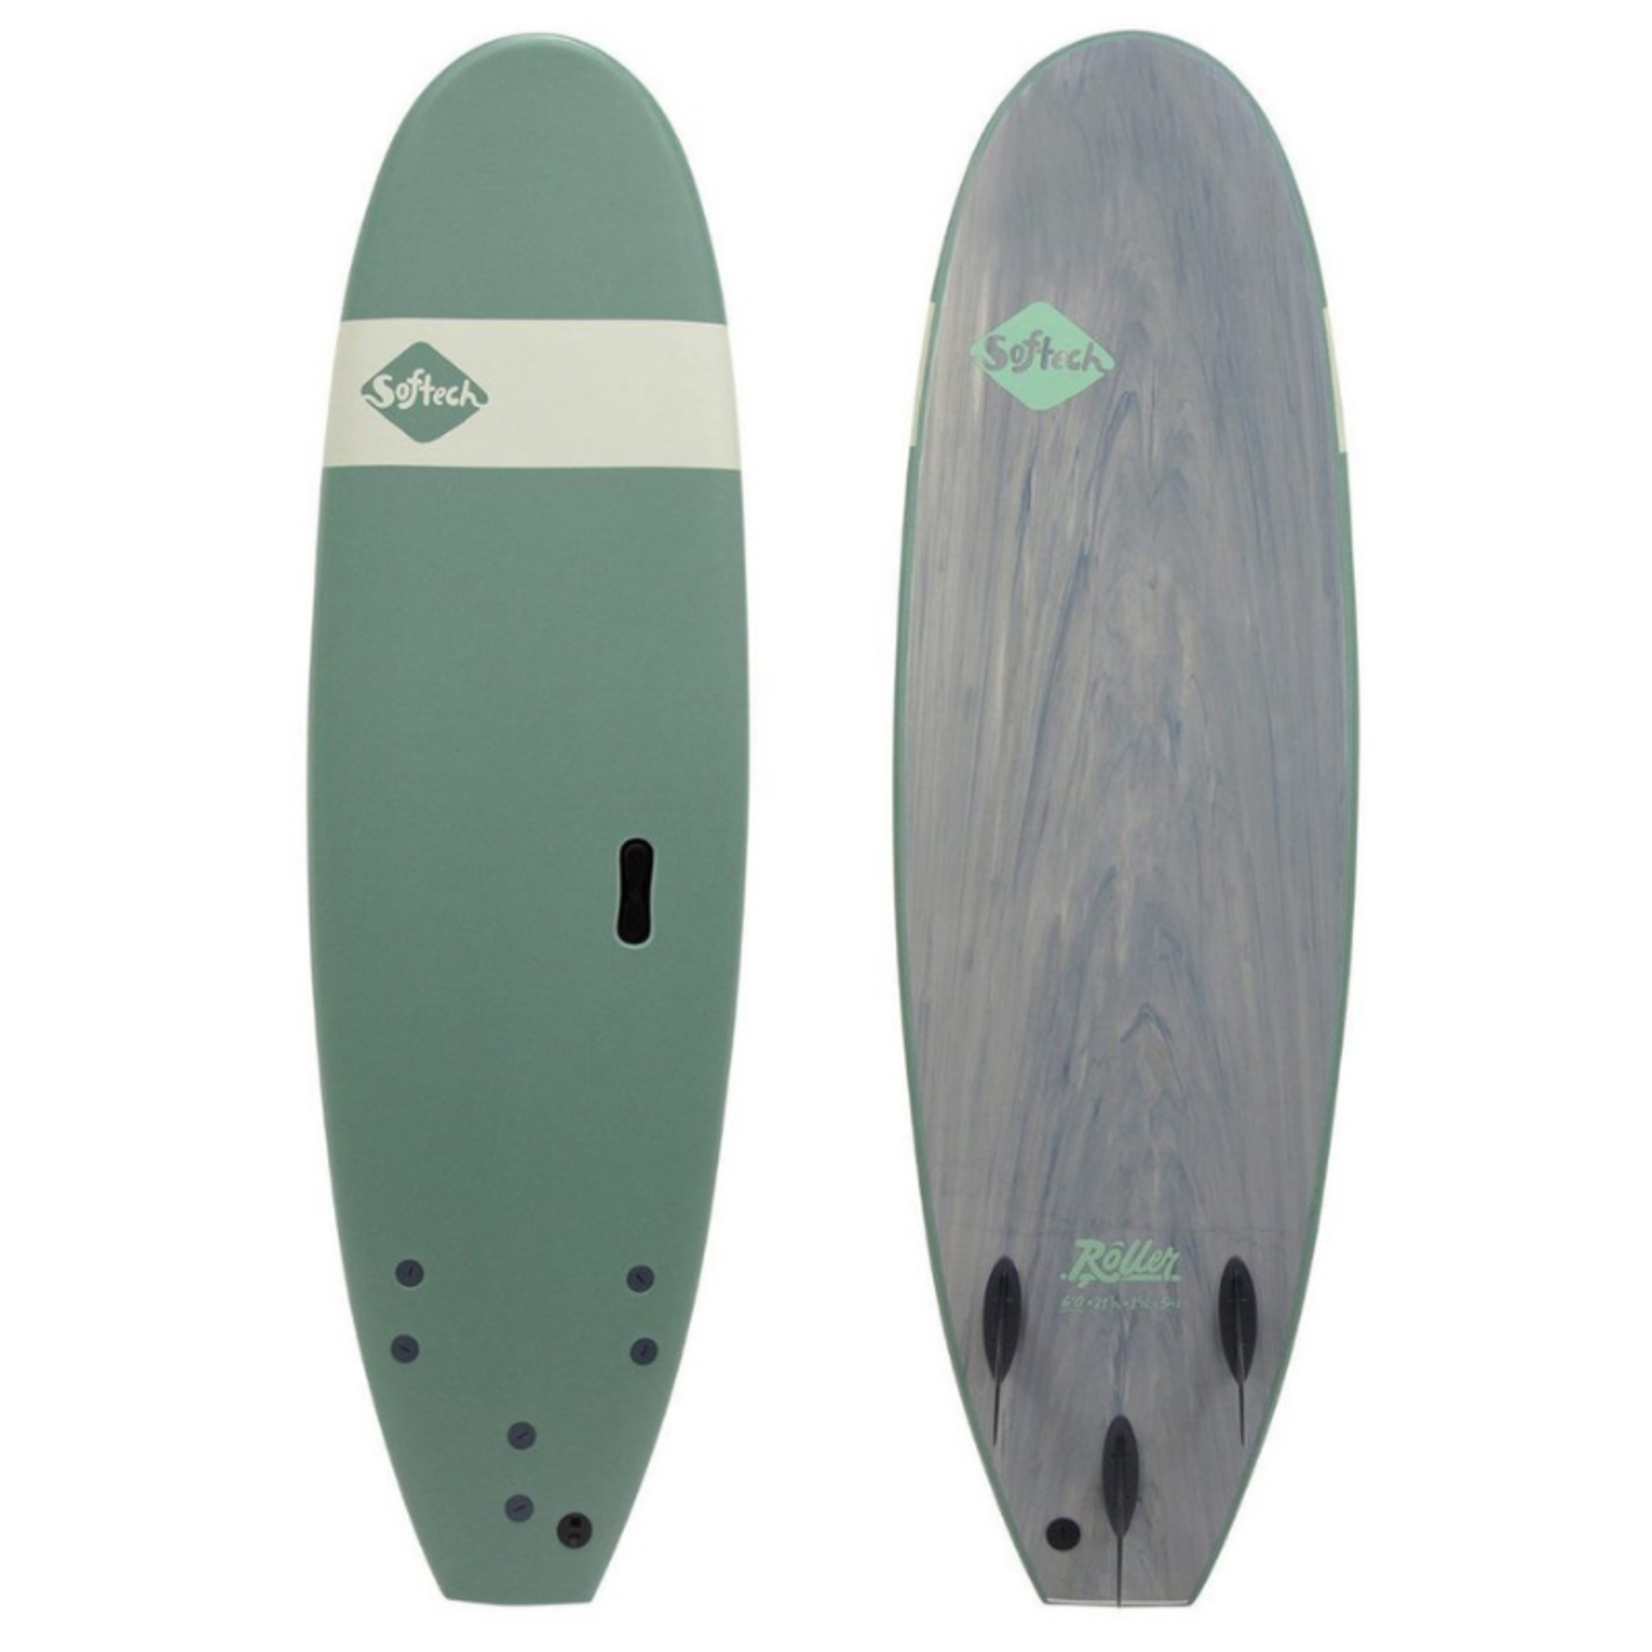 Softech Surfboards Softec Roller 7'6 Smoke Green